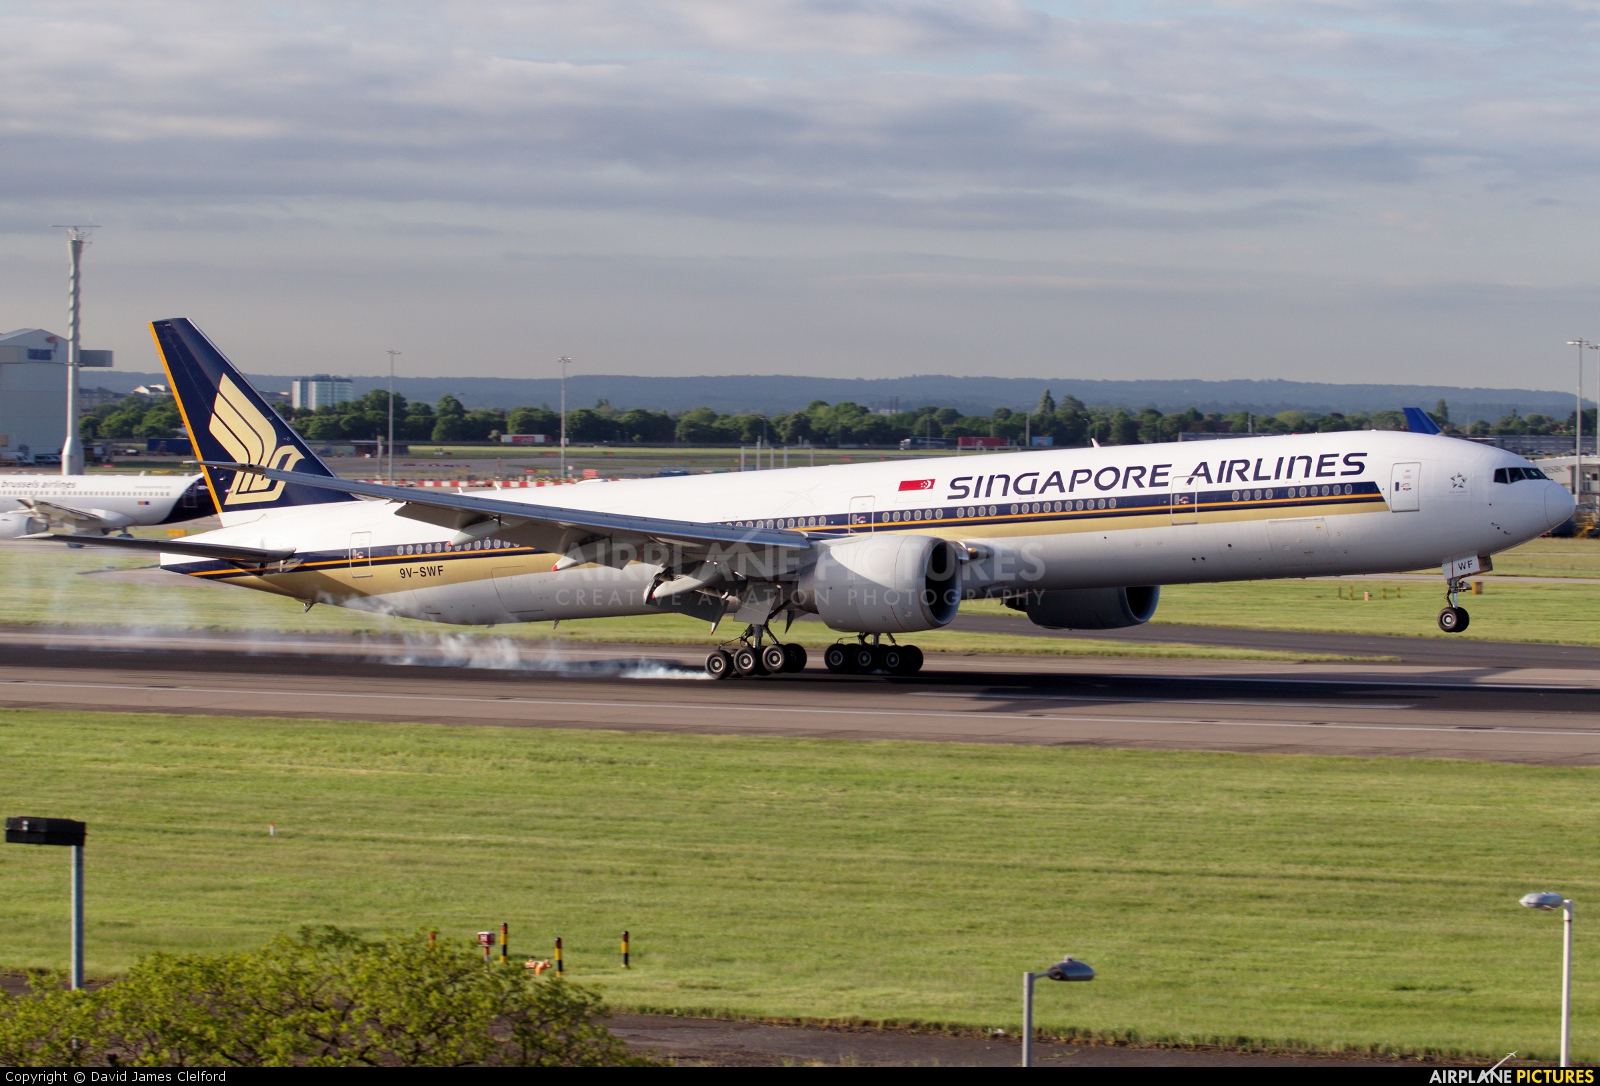 Singapore Airlines 9V-SWF aircraft at London - Heathrow